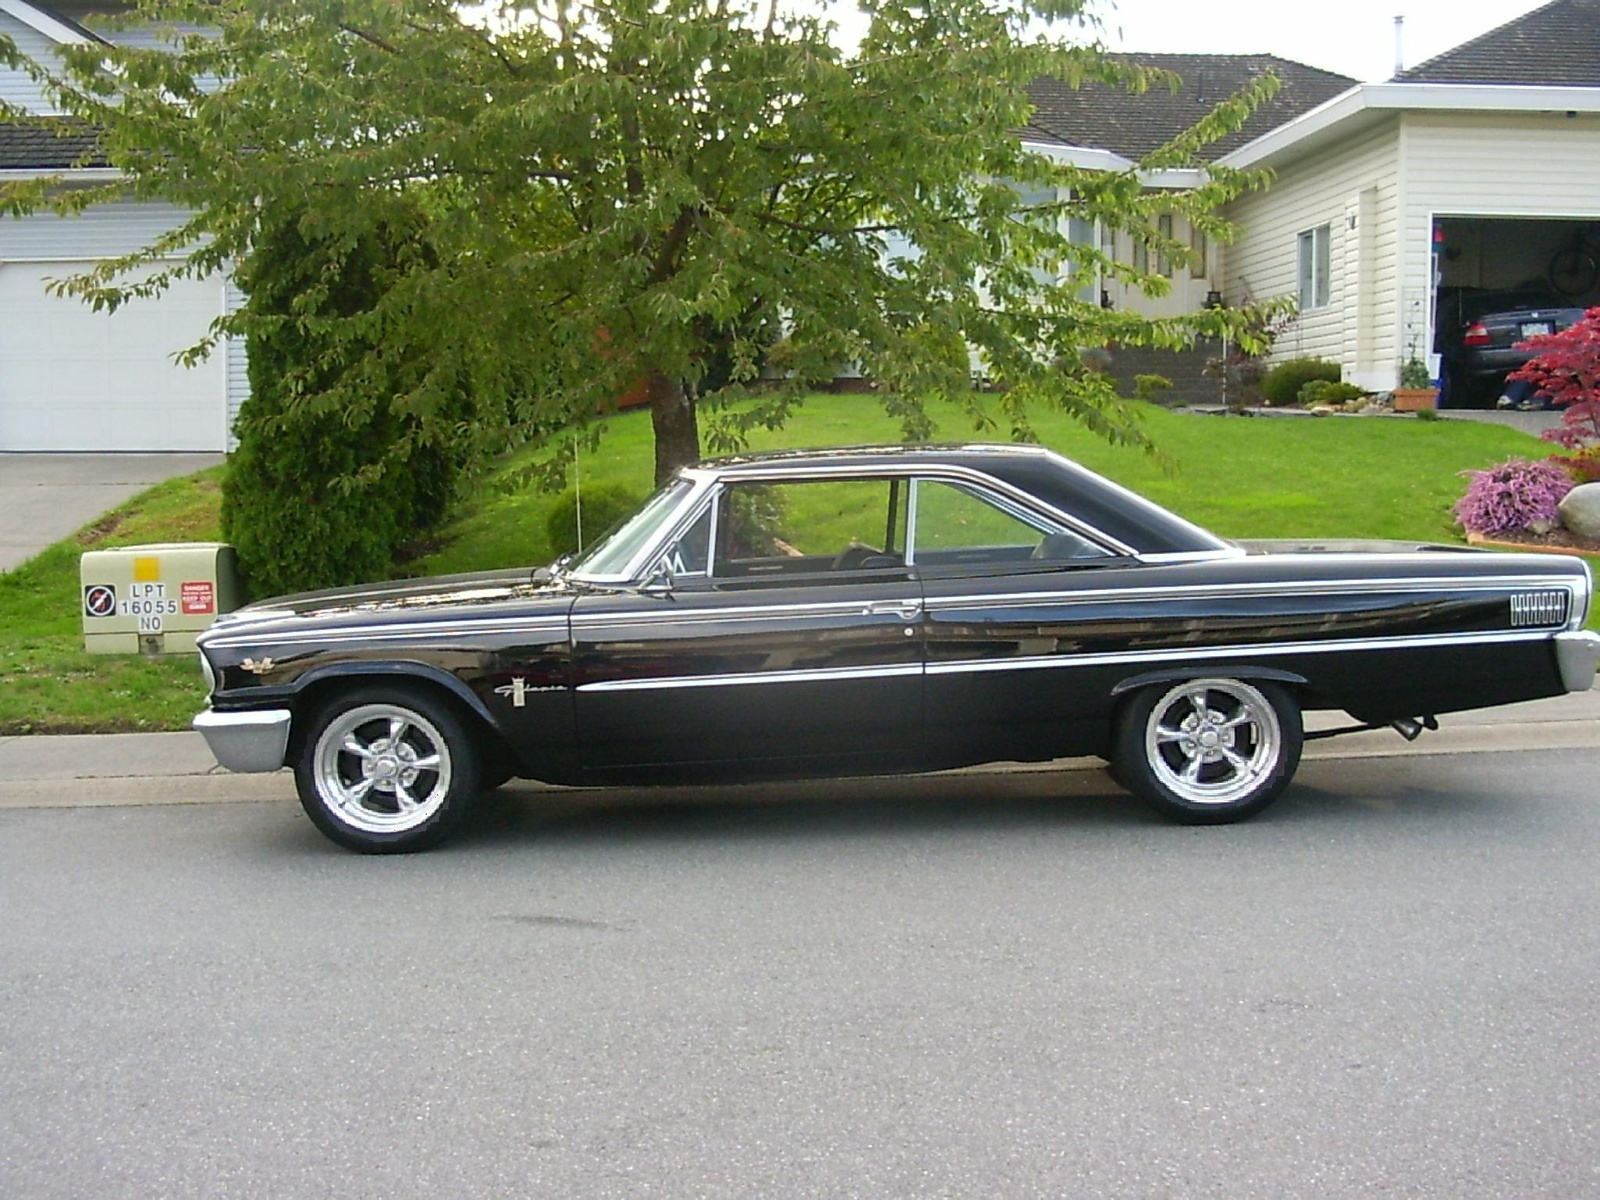 Ford Galaxy 1970 photo - 5